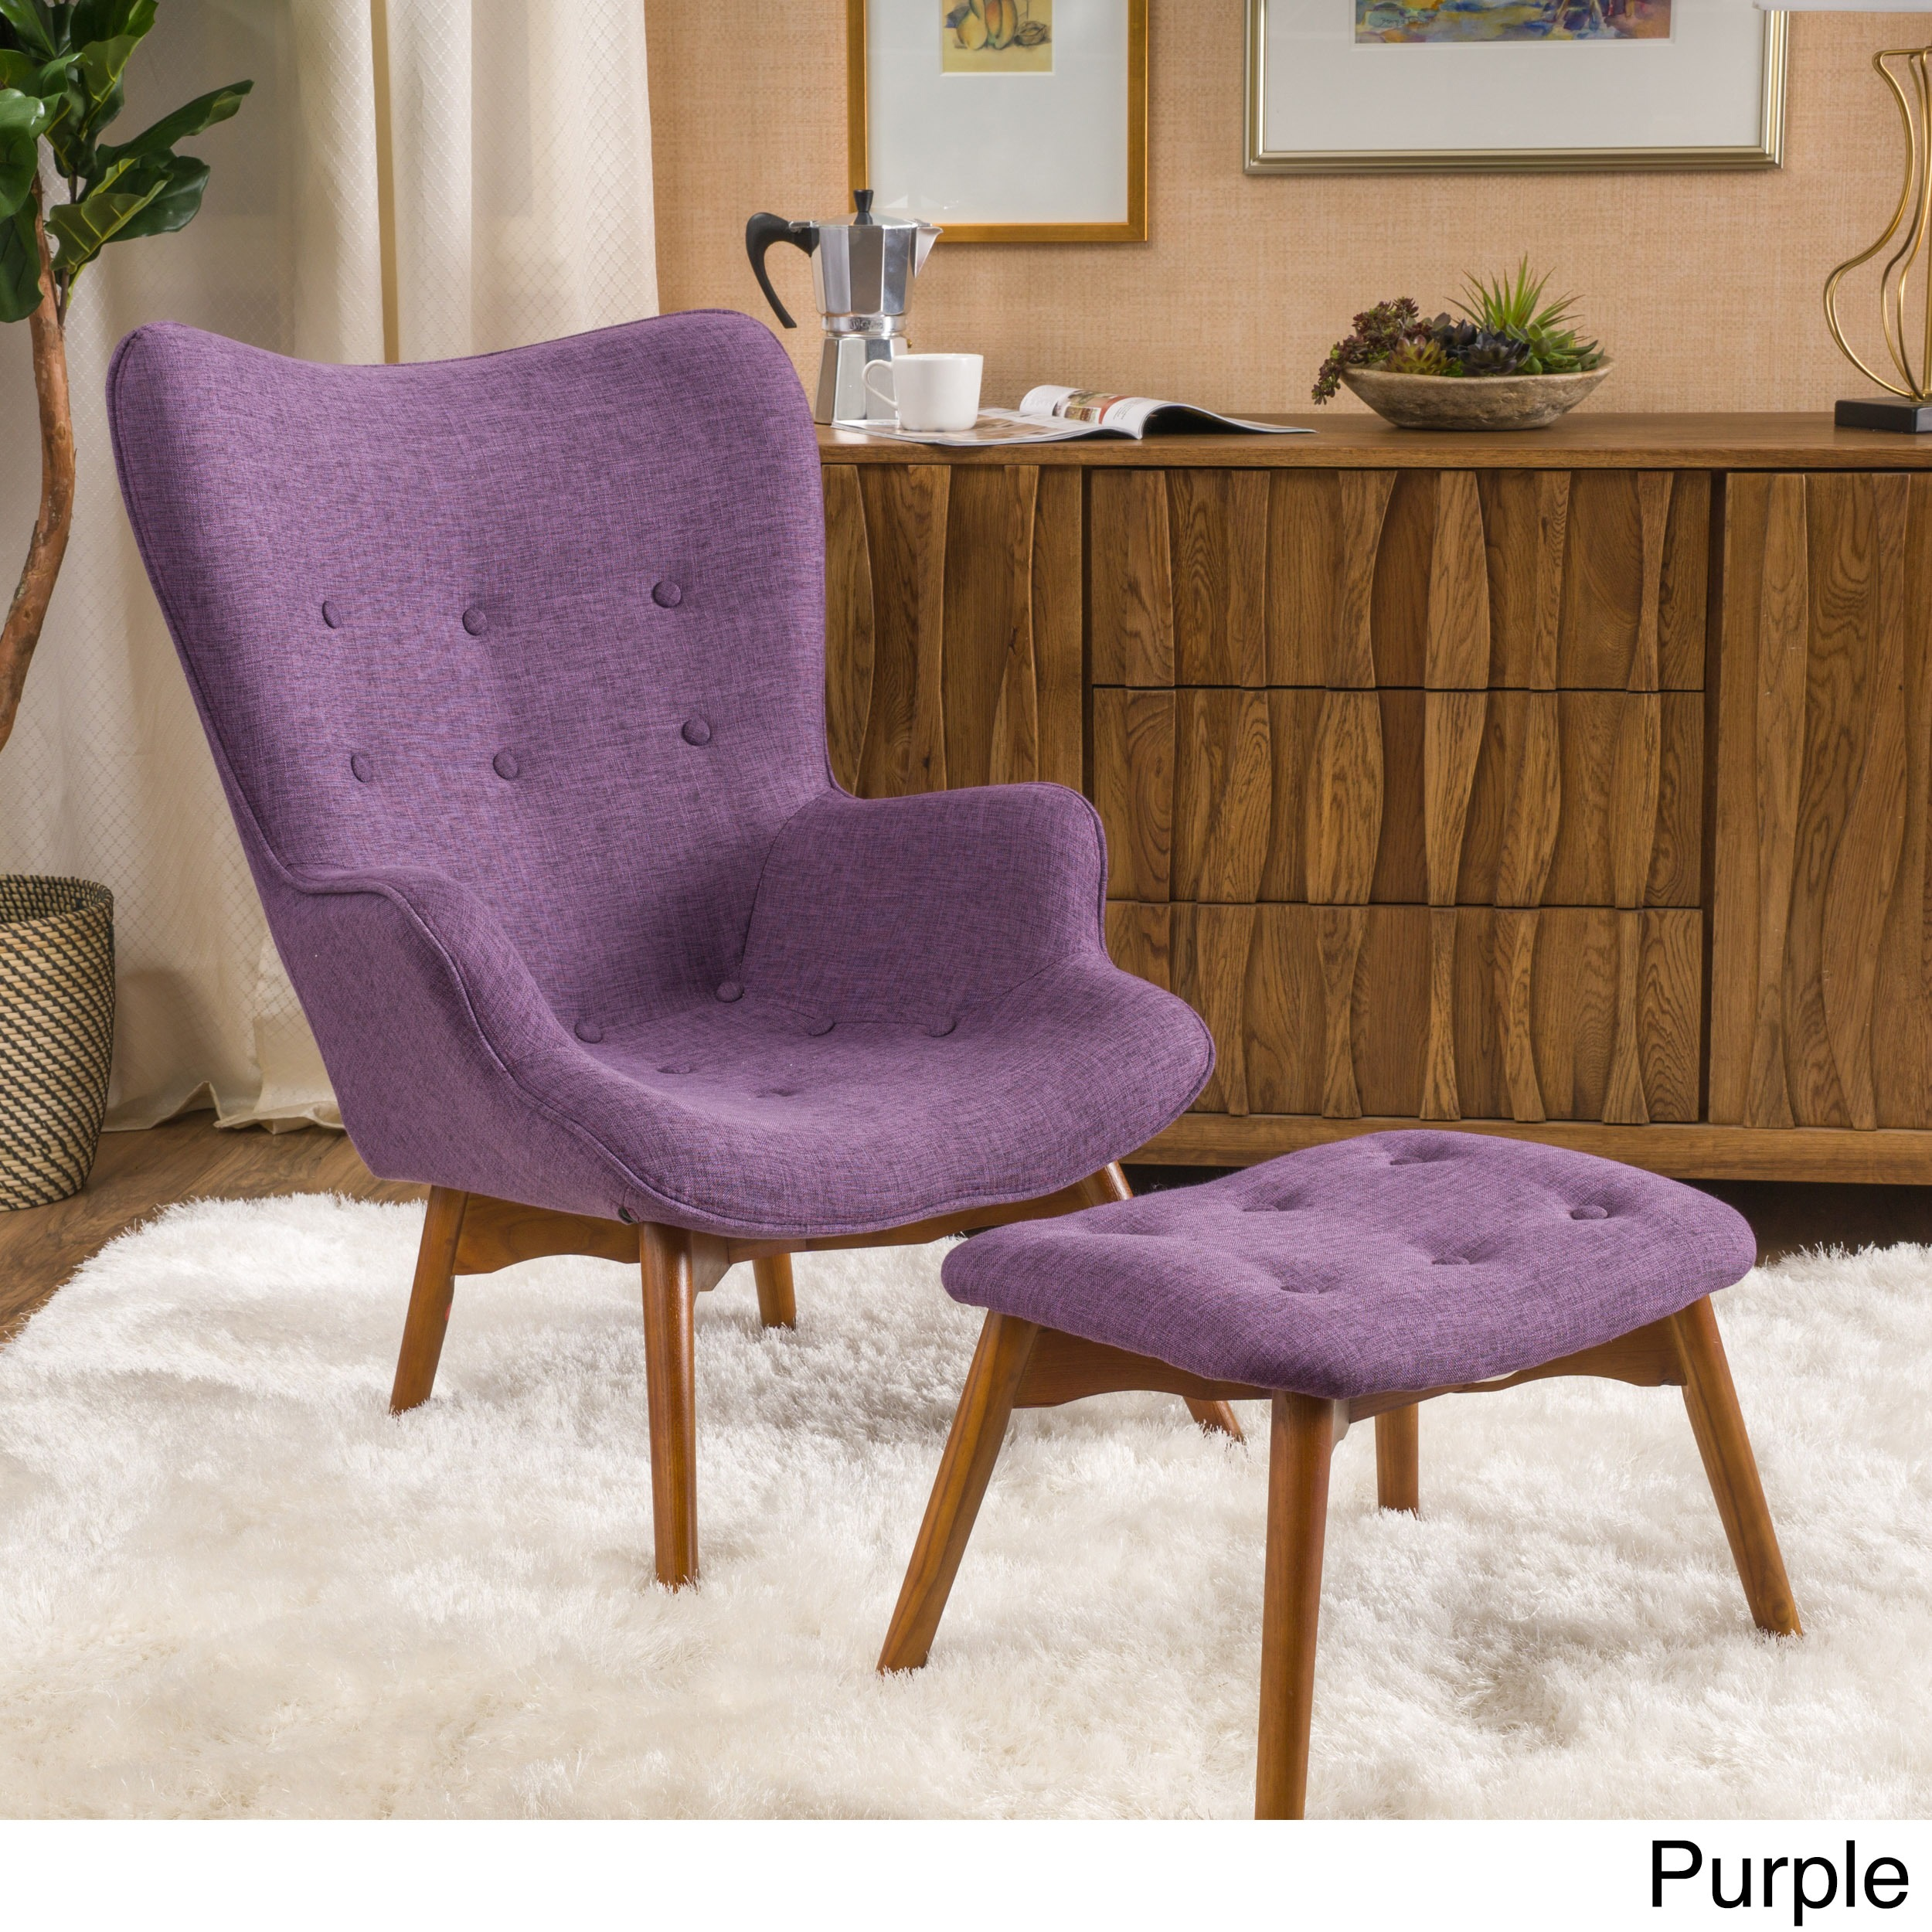 arm ottoman shipping portfolio living ottomans chair gray floral home today overstock product free and mira handy modern chairs garden